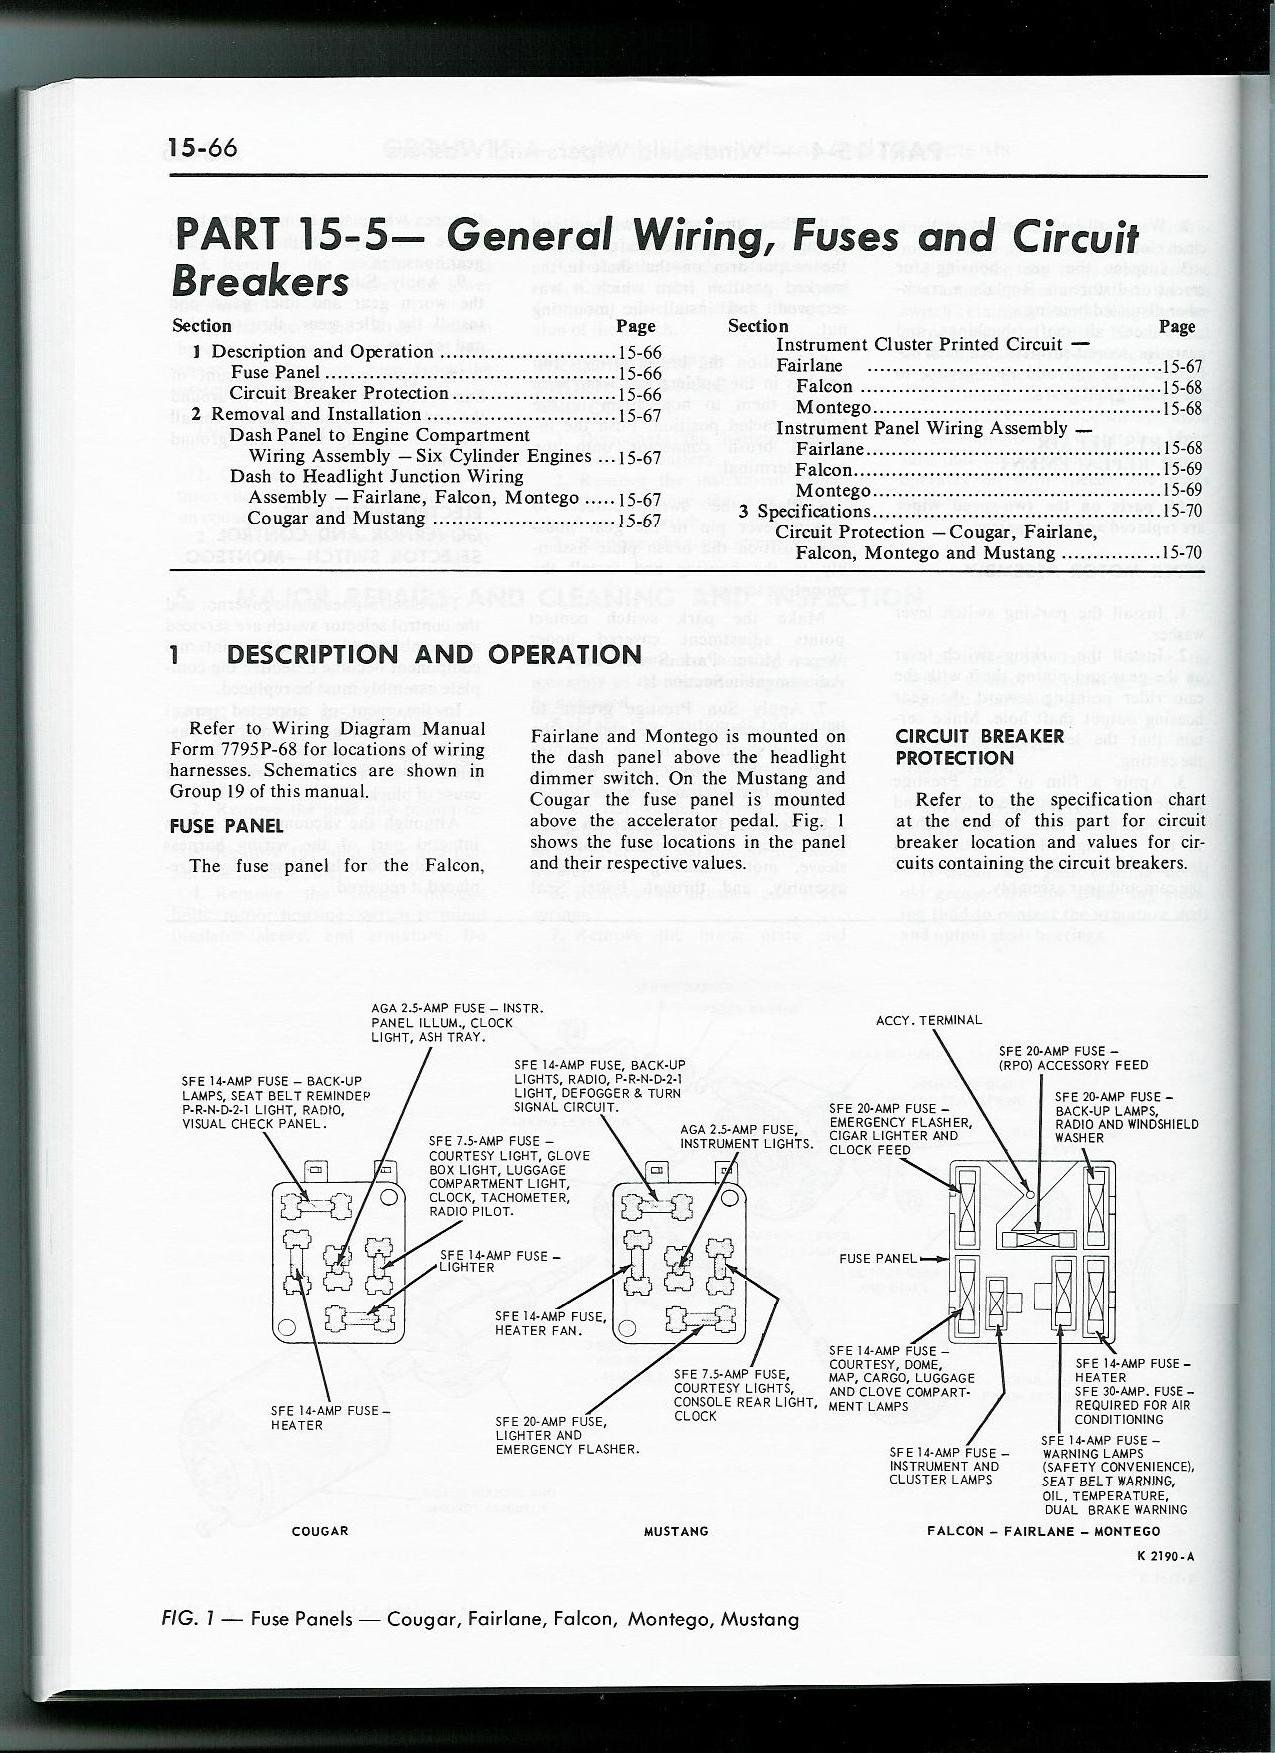 1969 Ford Mustang Fuse Box | Wiring Diagram  Mustang Fuse Box Location on